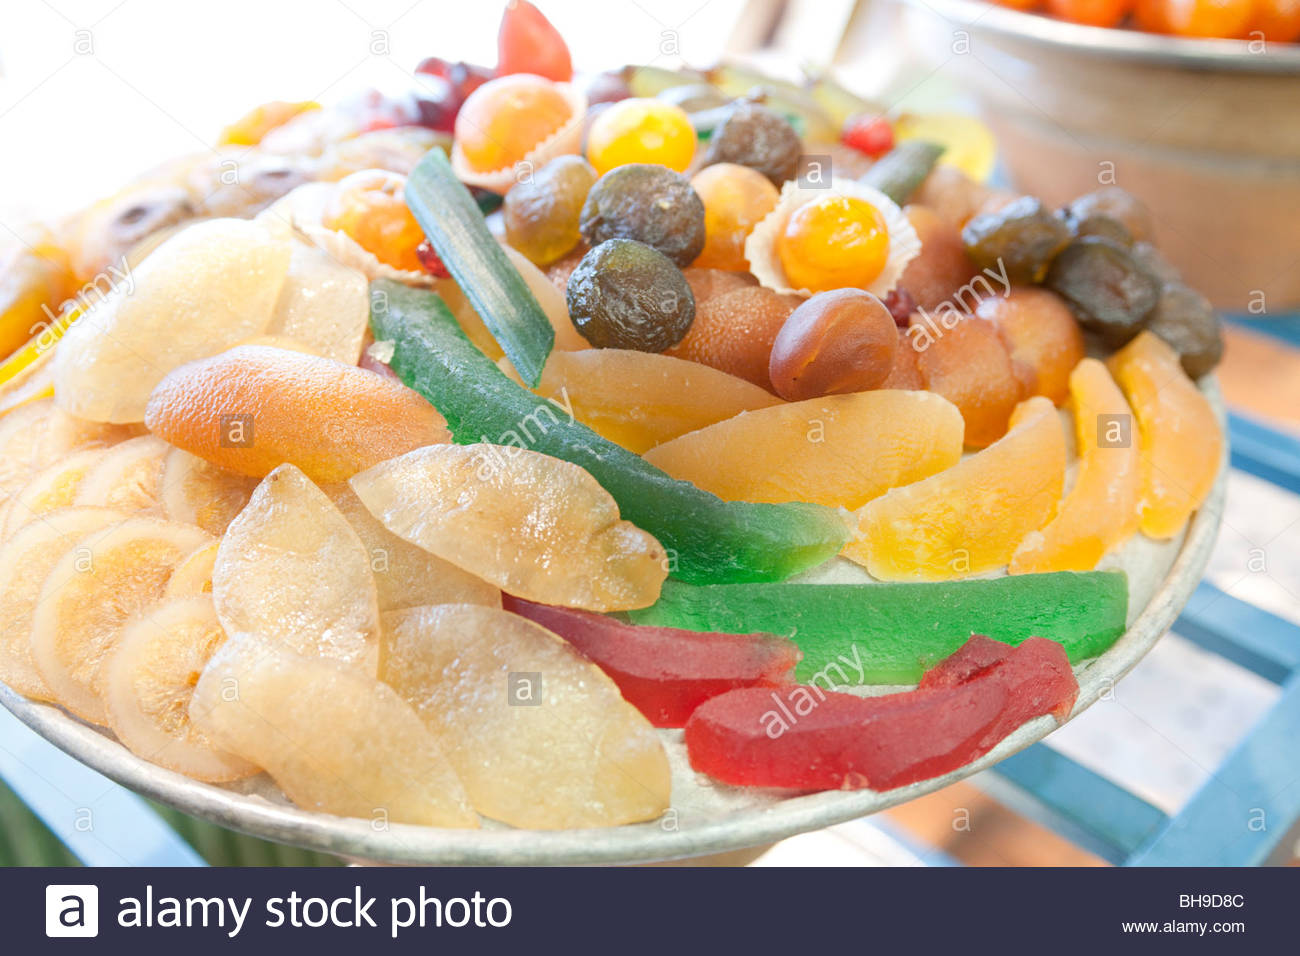 Large bowl, mixed glaced fruit, confectionery, Confiserie Florian, Nice, France - Stock Image